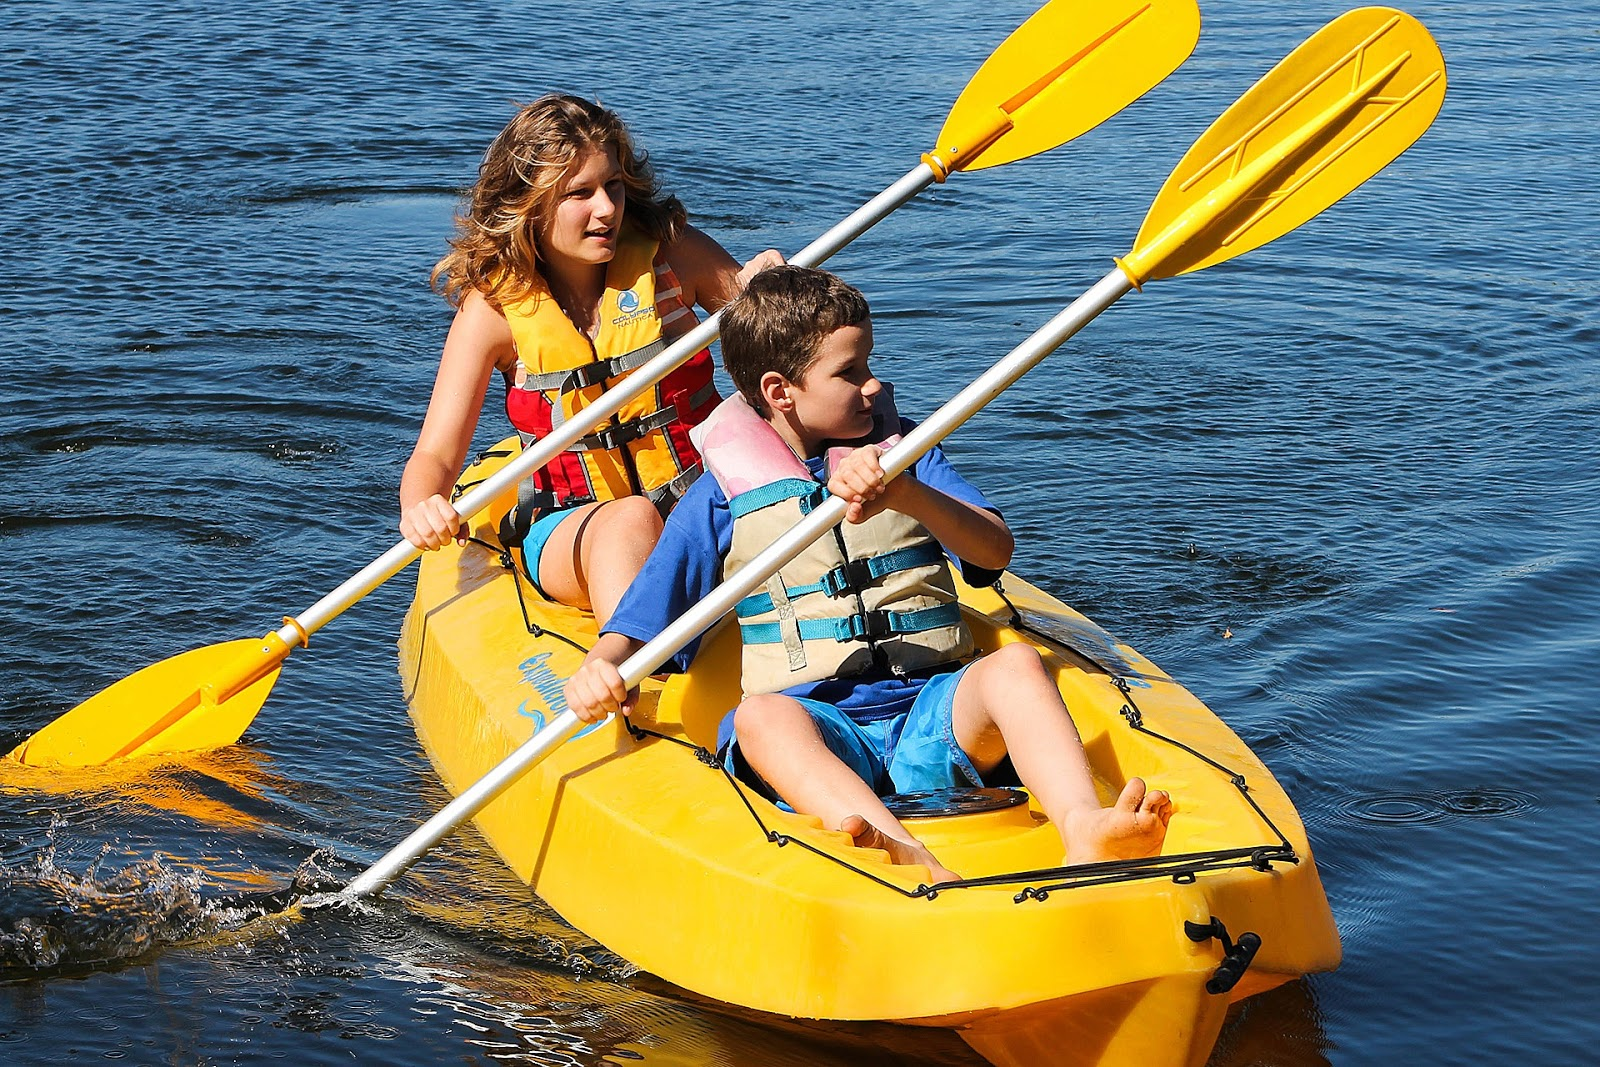 namc montessori Ideas for Non-Competitive Physical Education in the Montessori Environment family kayaking